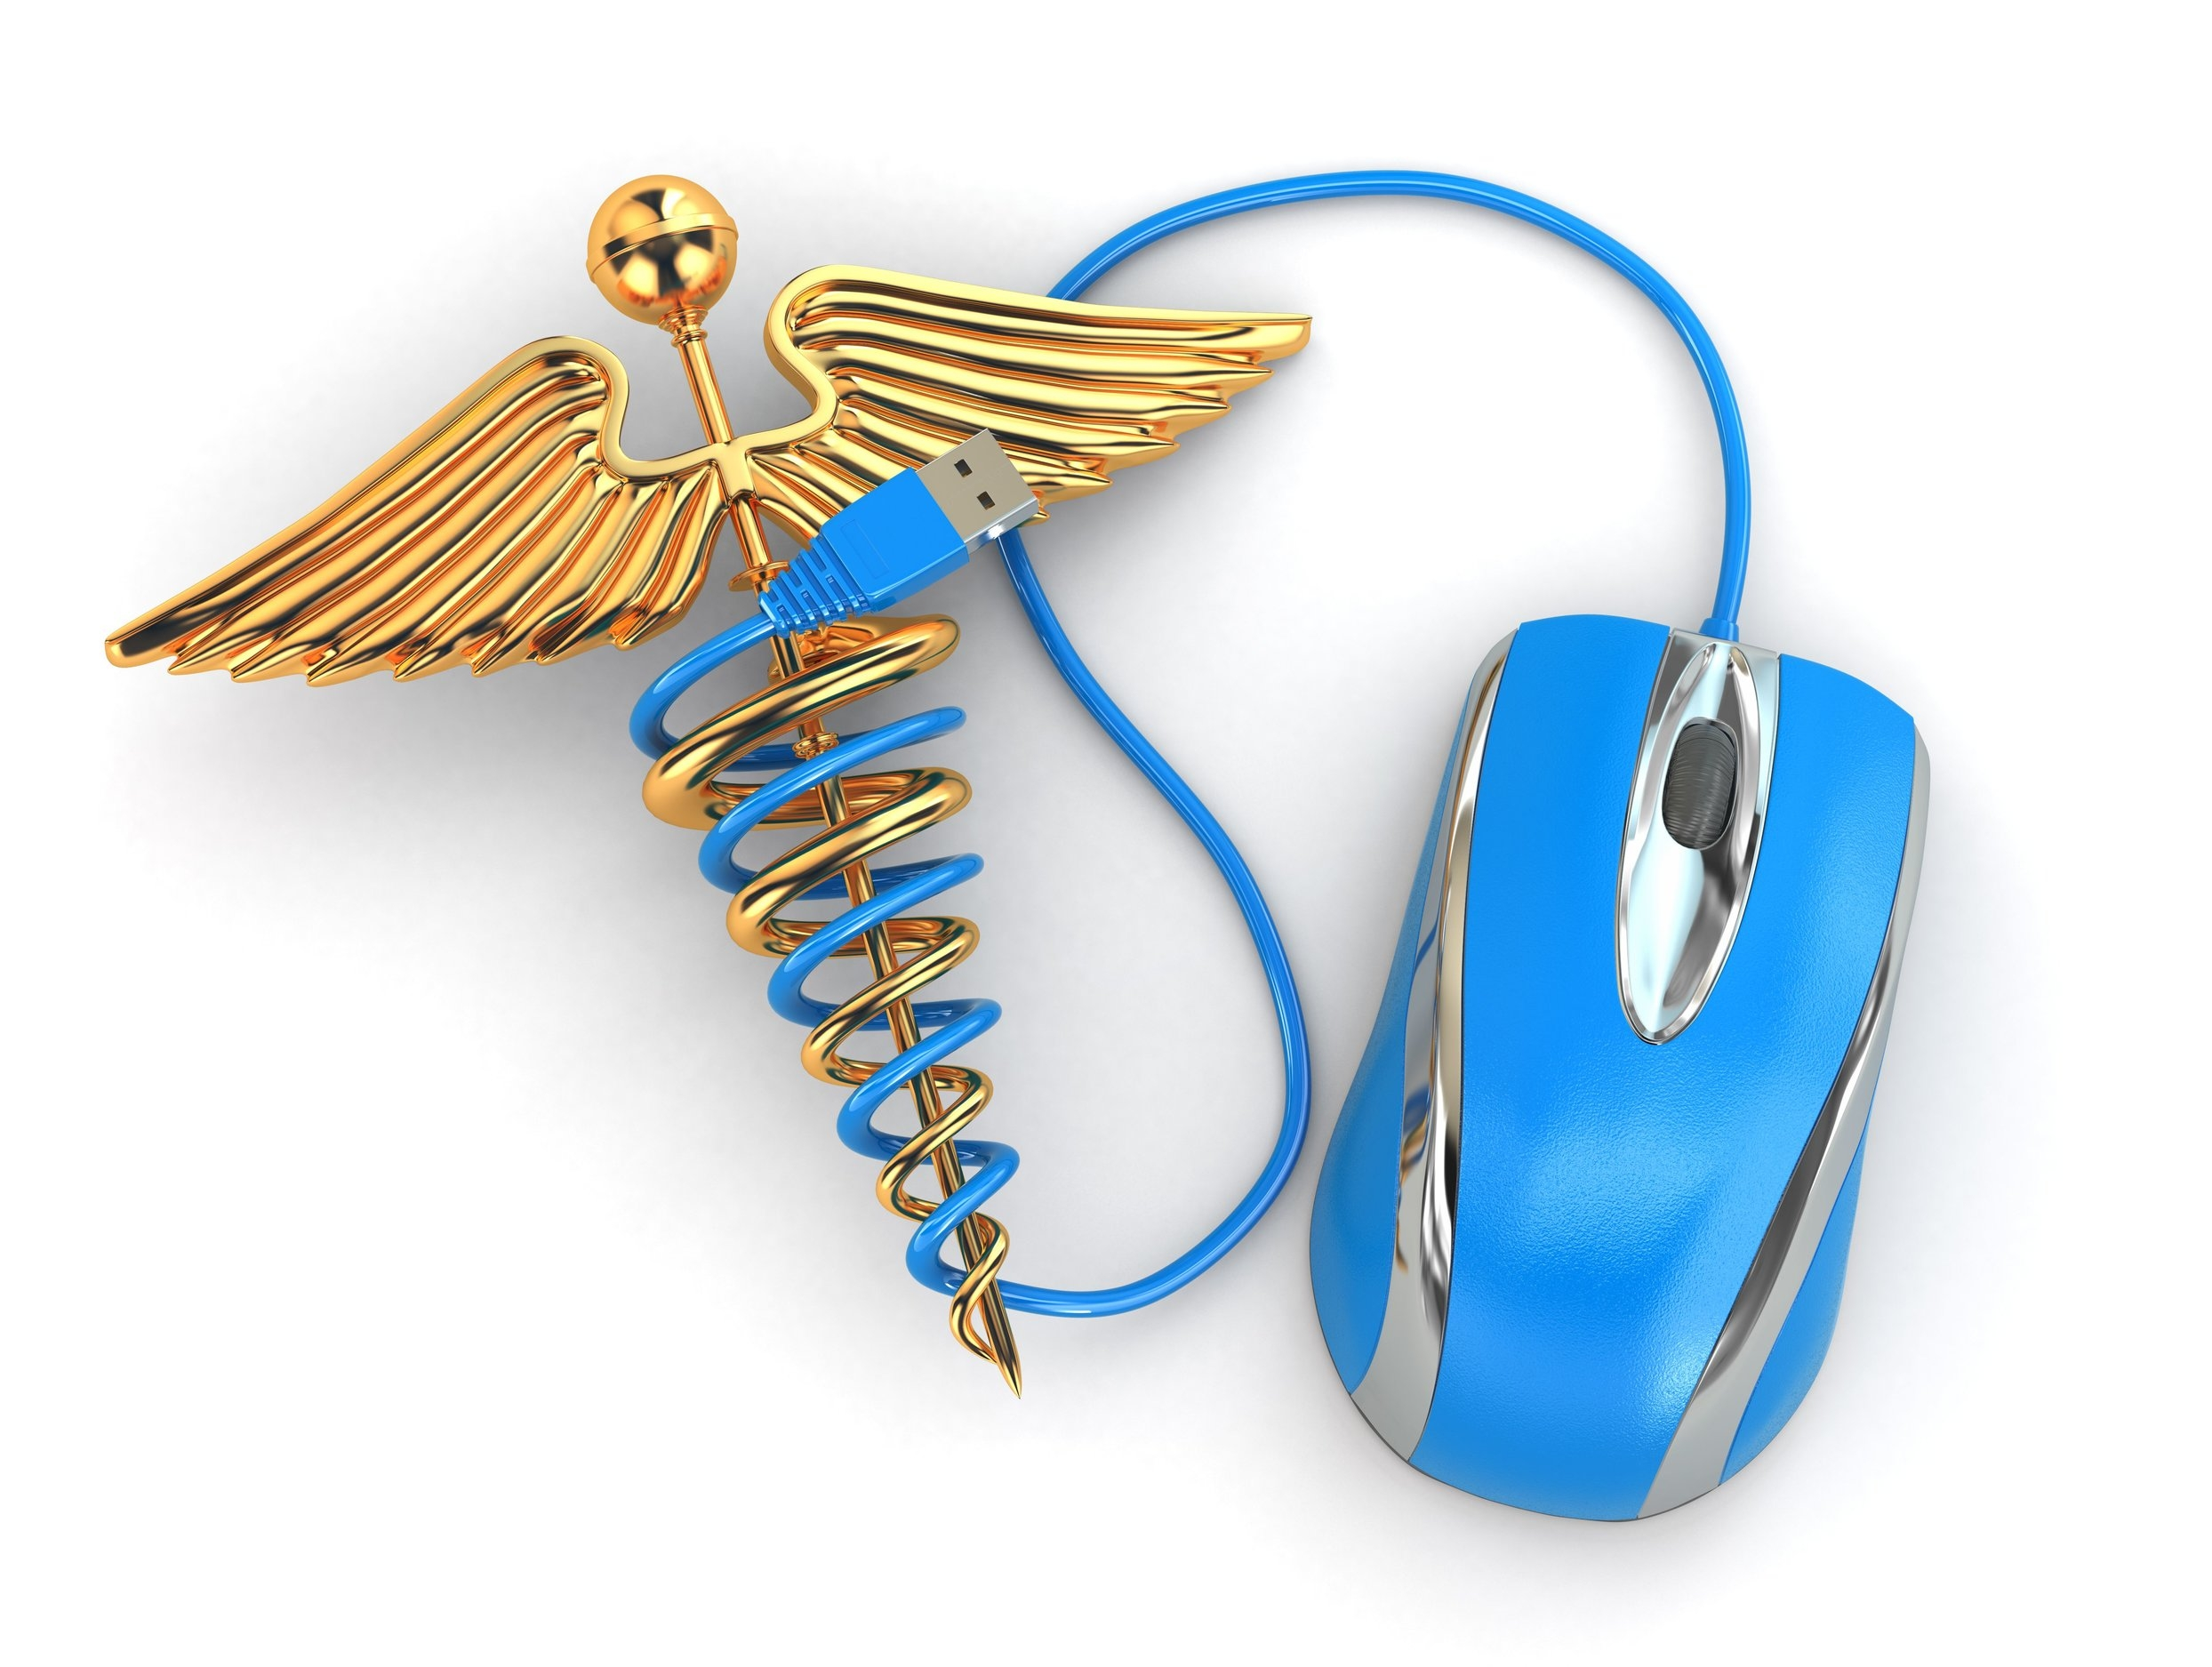 Health Technology Medical Computer Mouse Wire Blue Gold Caduceus.jpg